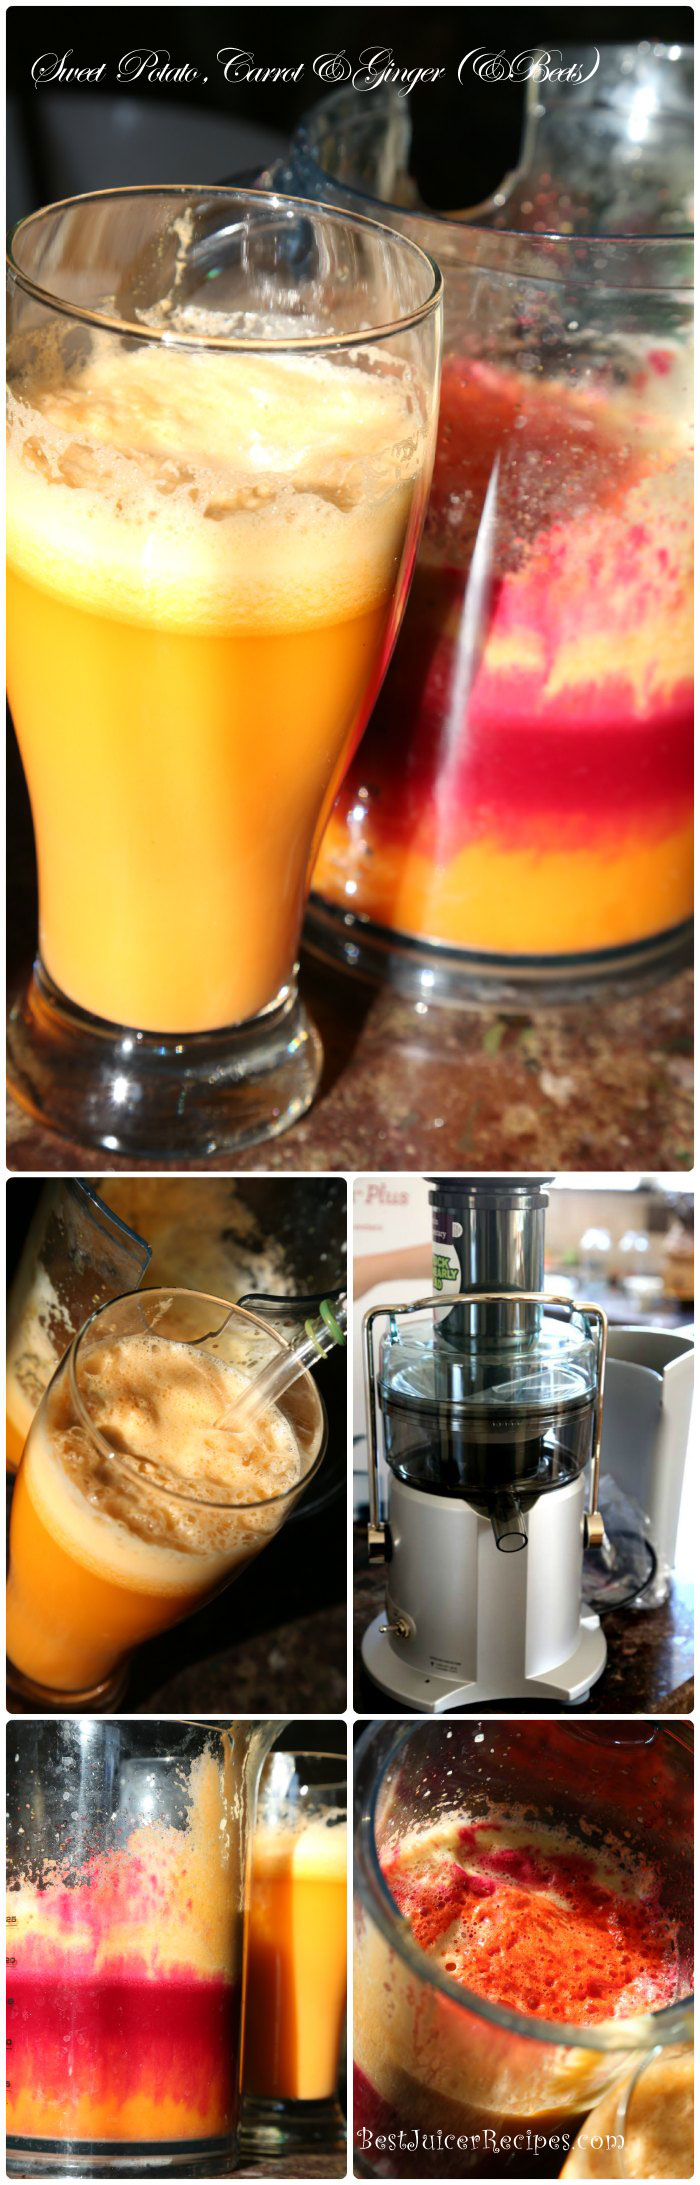 sweet potato juice (with beets)